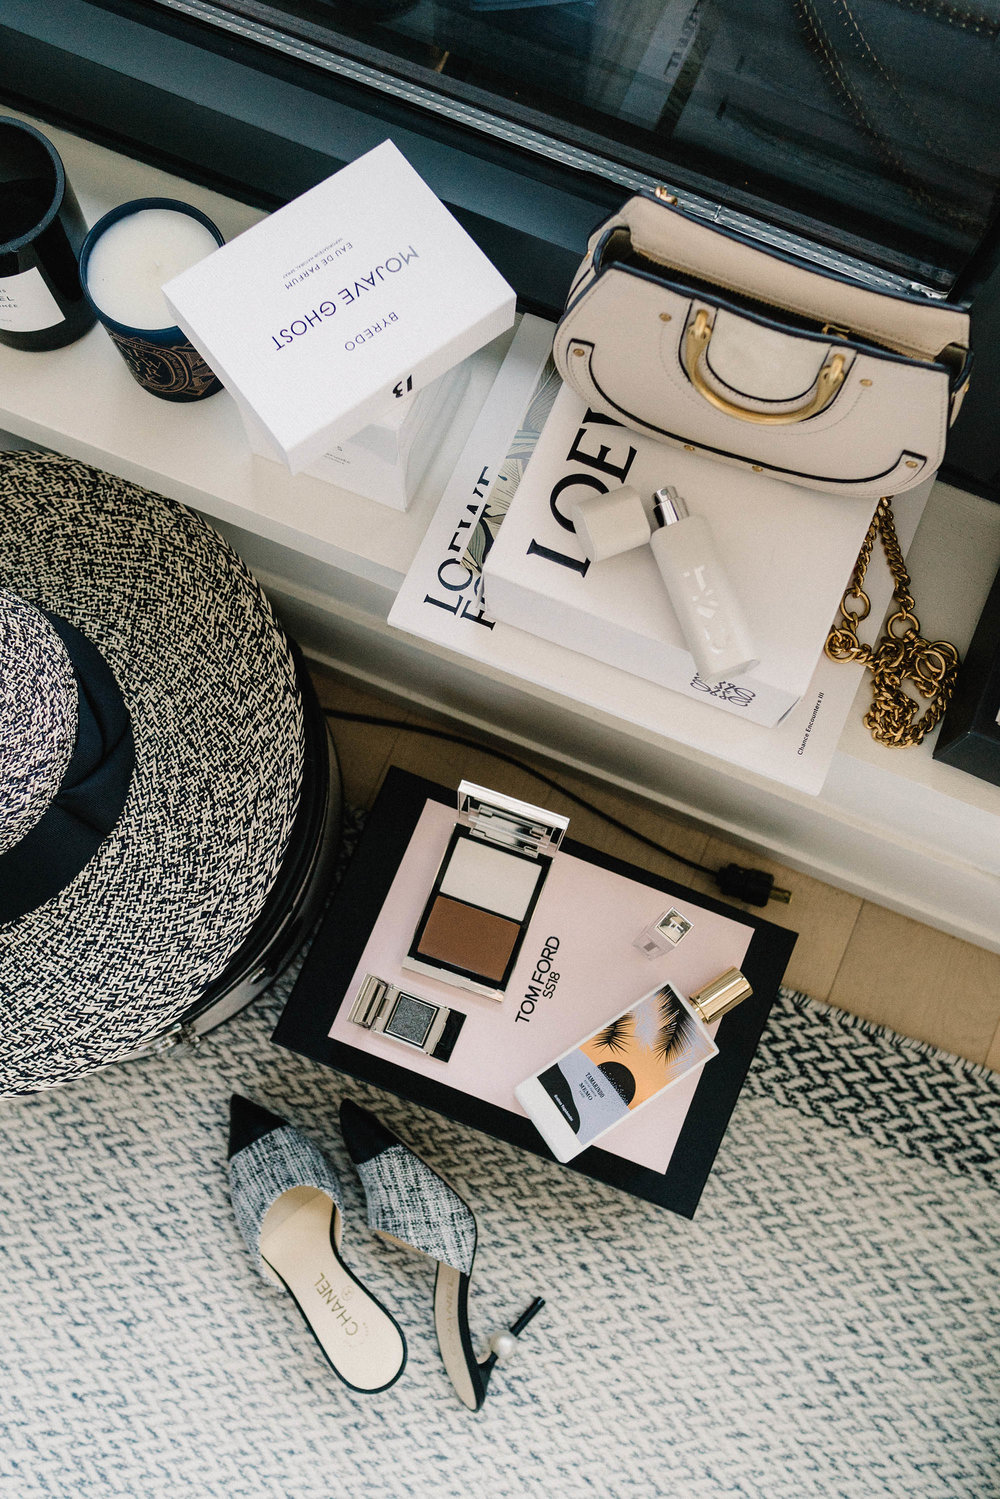 Chloe Bag ,  Byredo Fragrance Travel Case ,  Tom Ford Beauty ,  MEMO Paris Fragrance , Chanel Mules